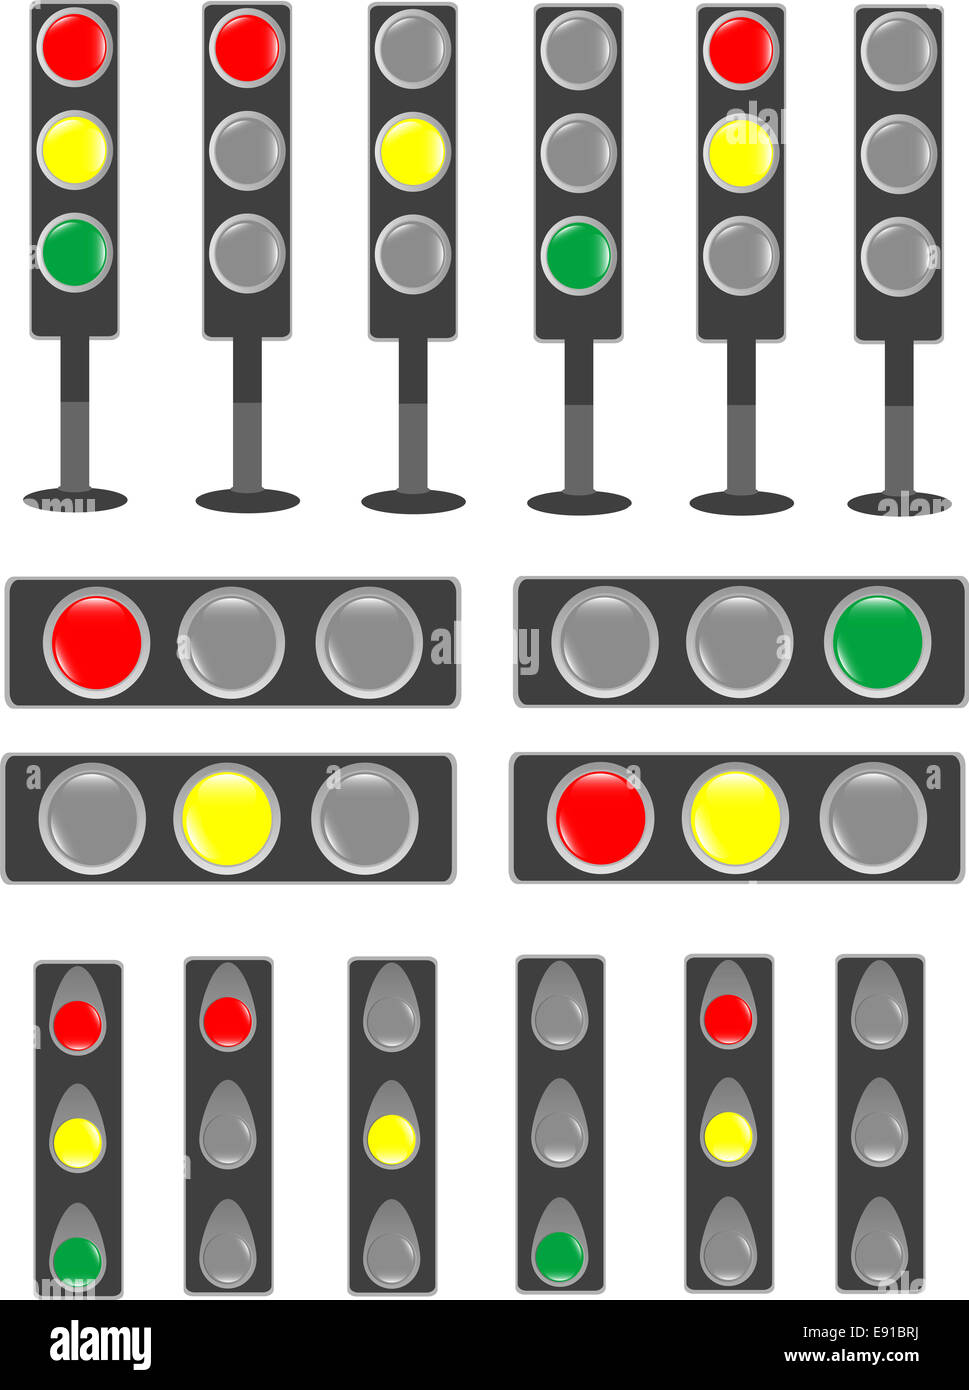 Traffic Light Status Bar Semaphore.